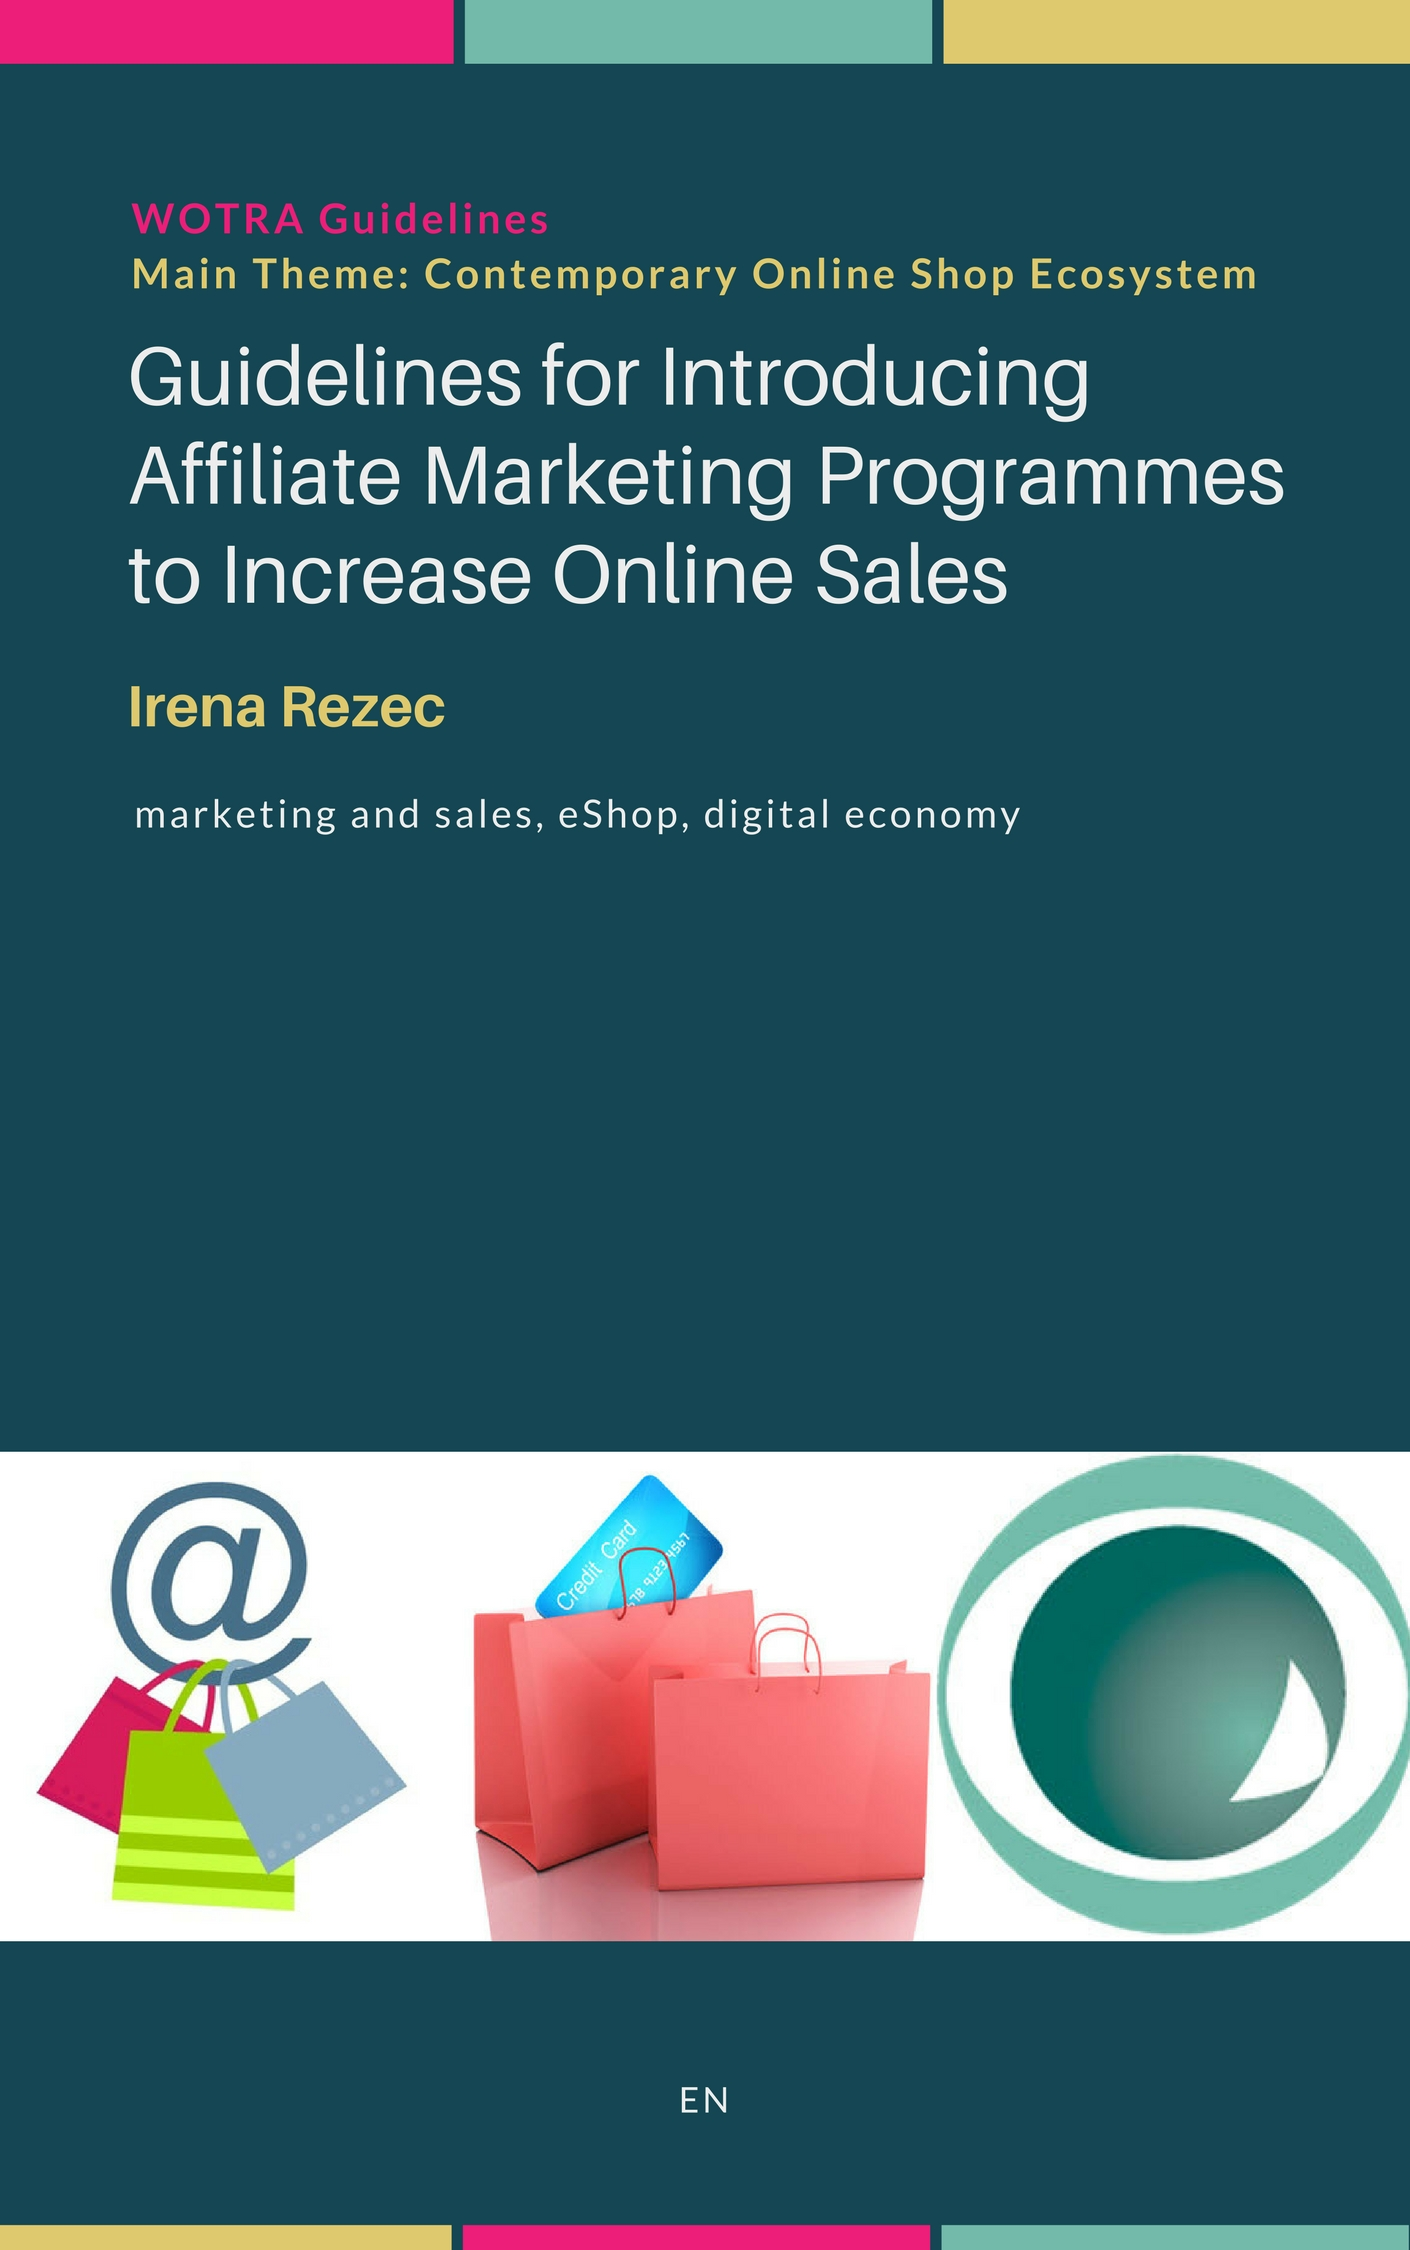 Guidelines for Introducing Affiliate Marketing Programmes to Increase Online Sales